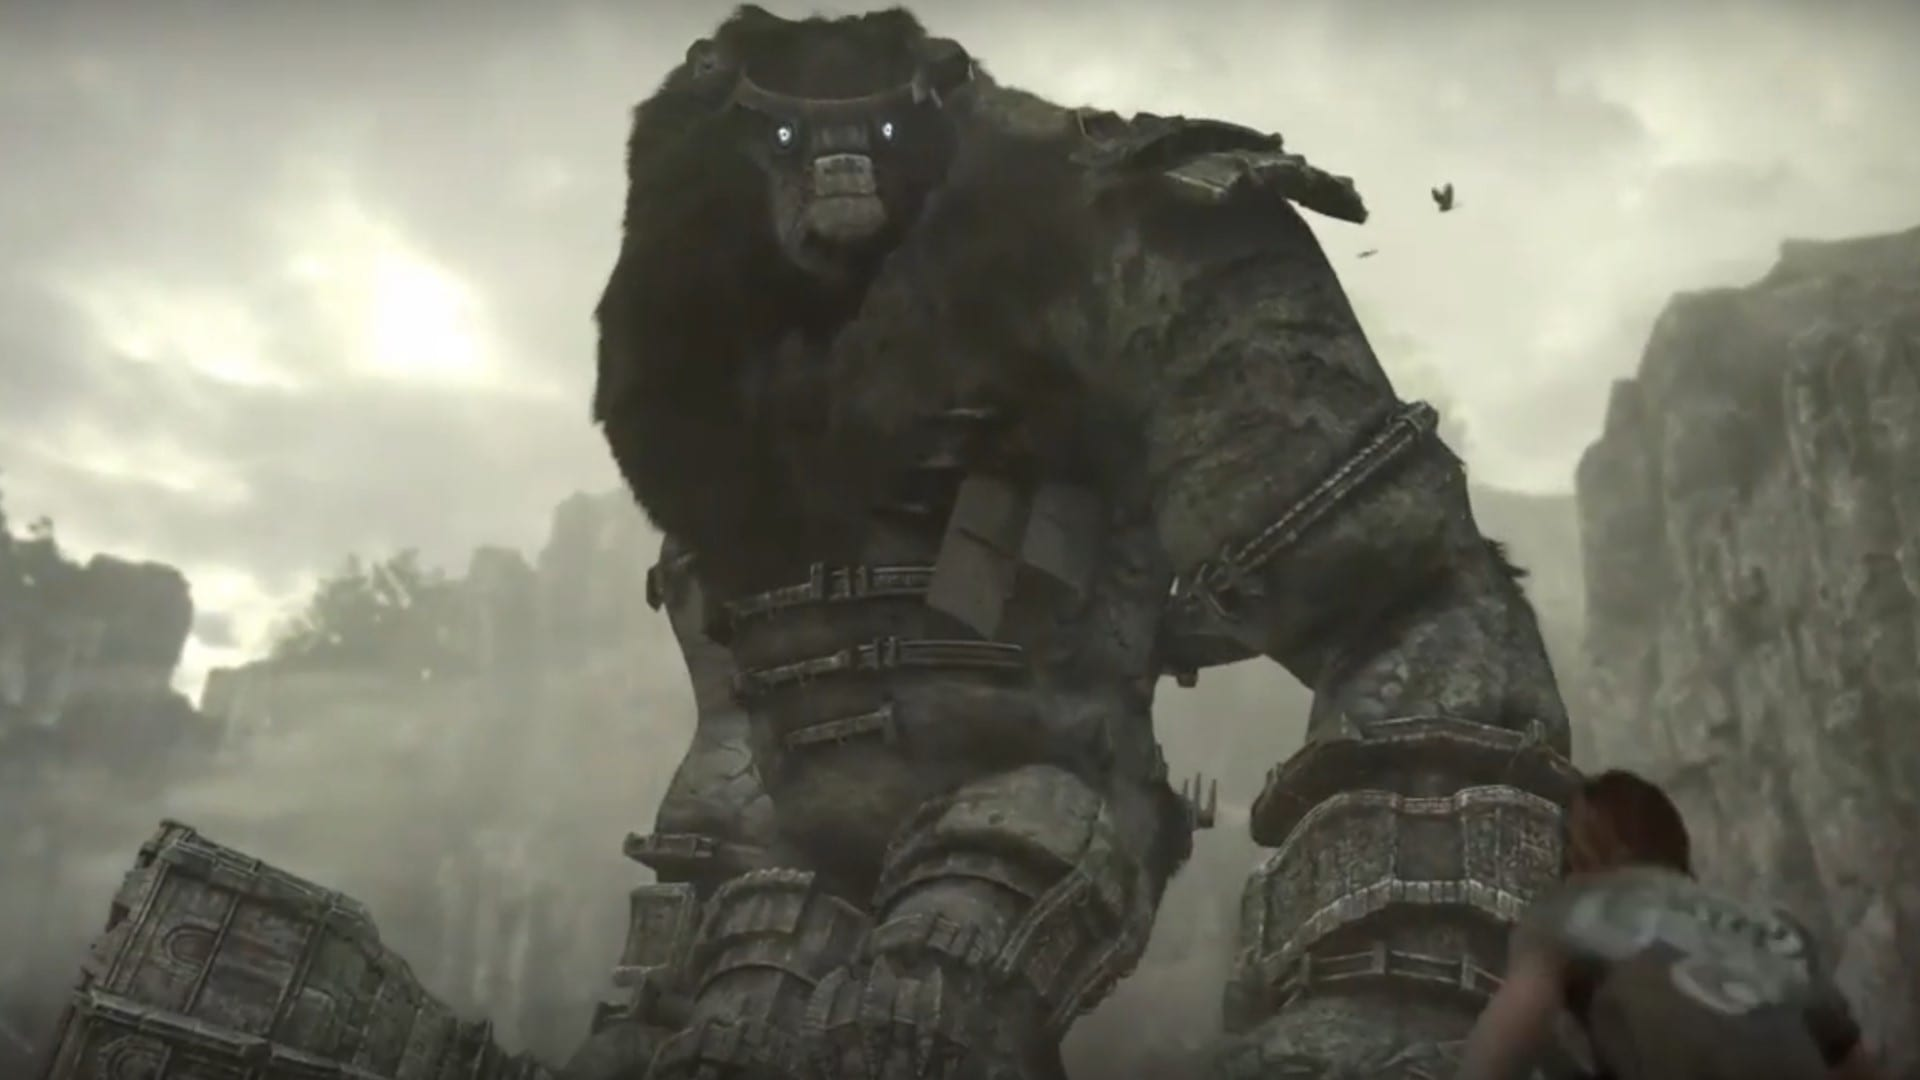 Shadow of the Colossus Coming to the Playstation 4